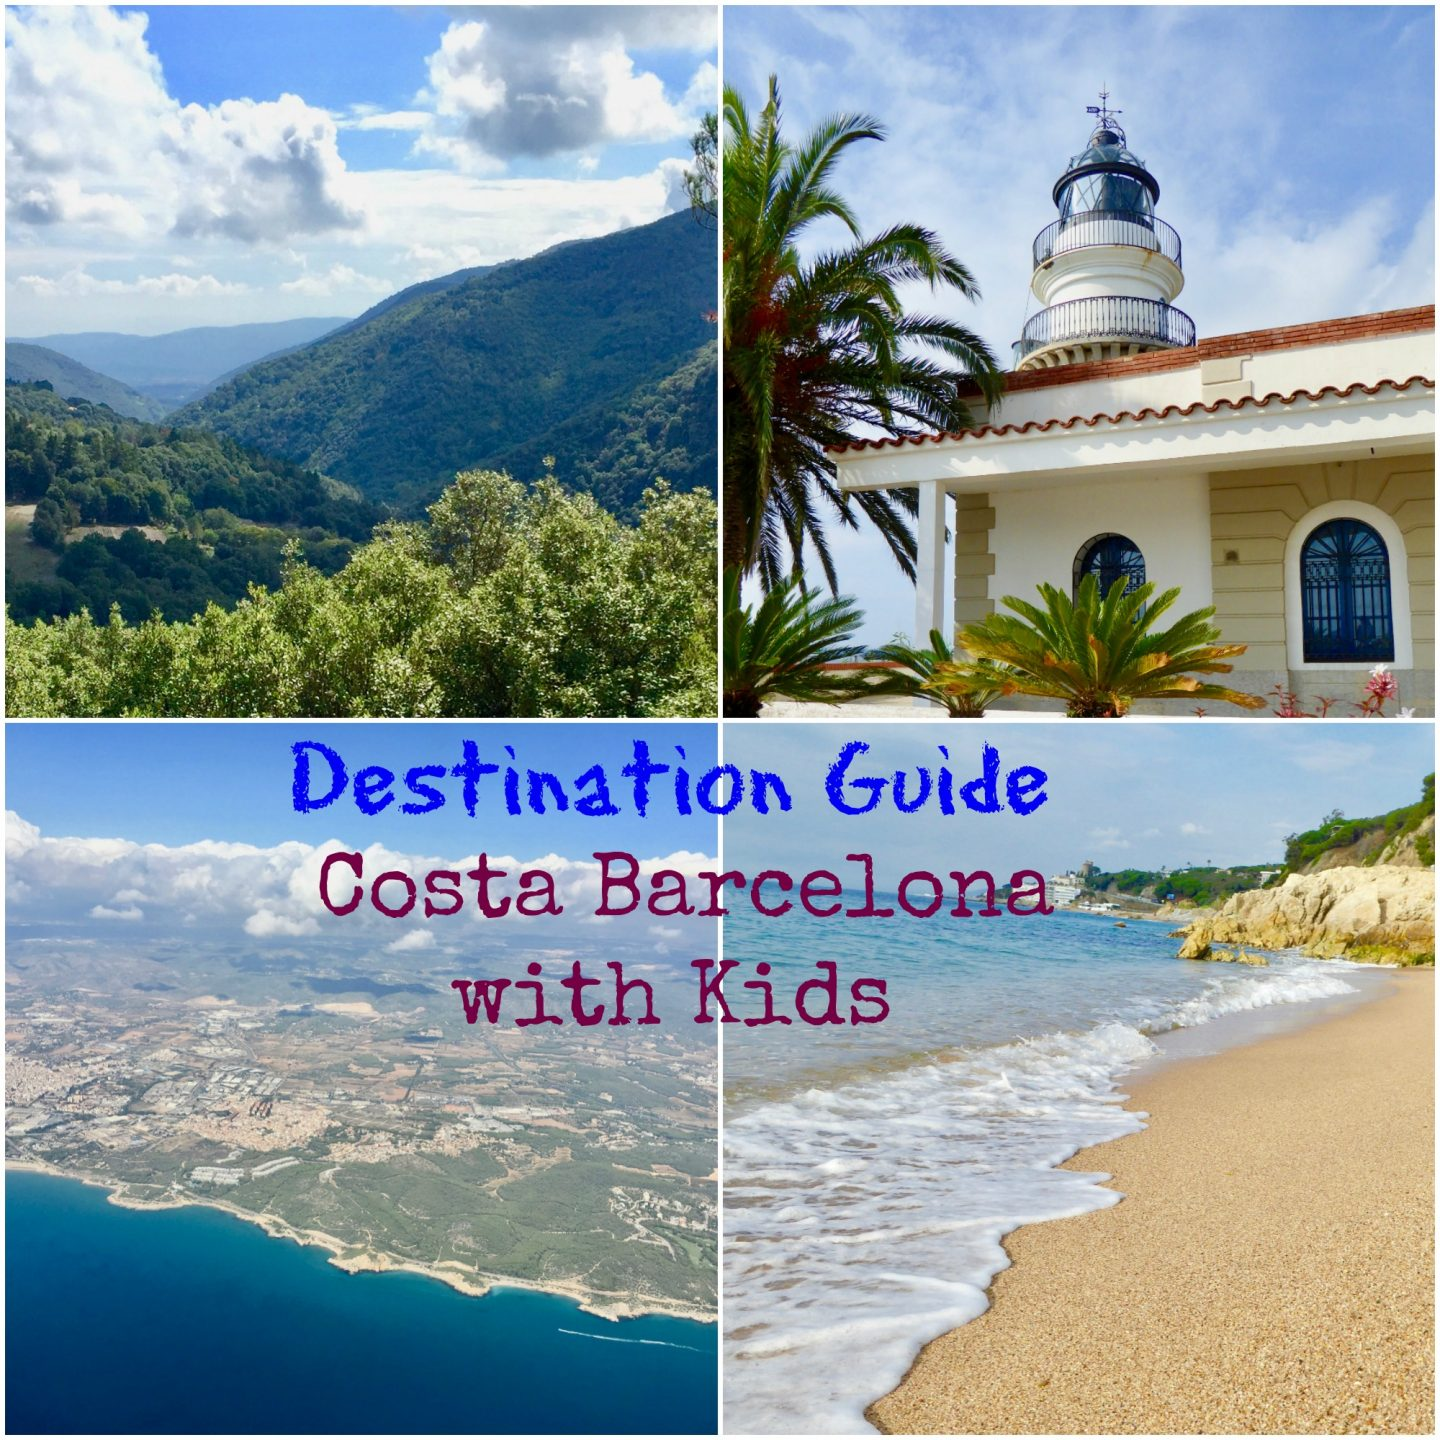 Destination guide Costa Barcelona with kids